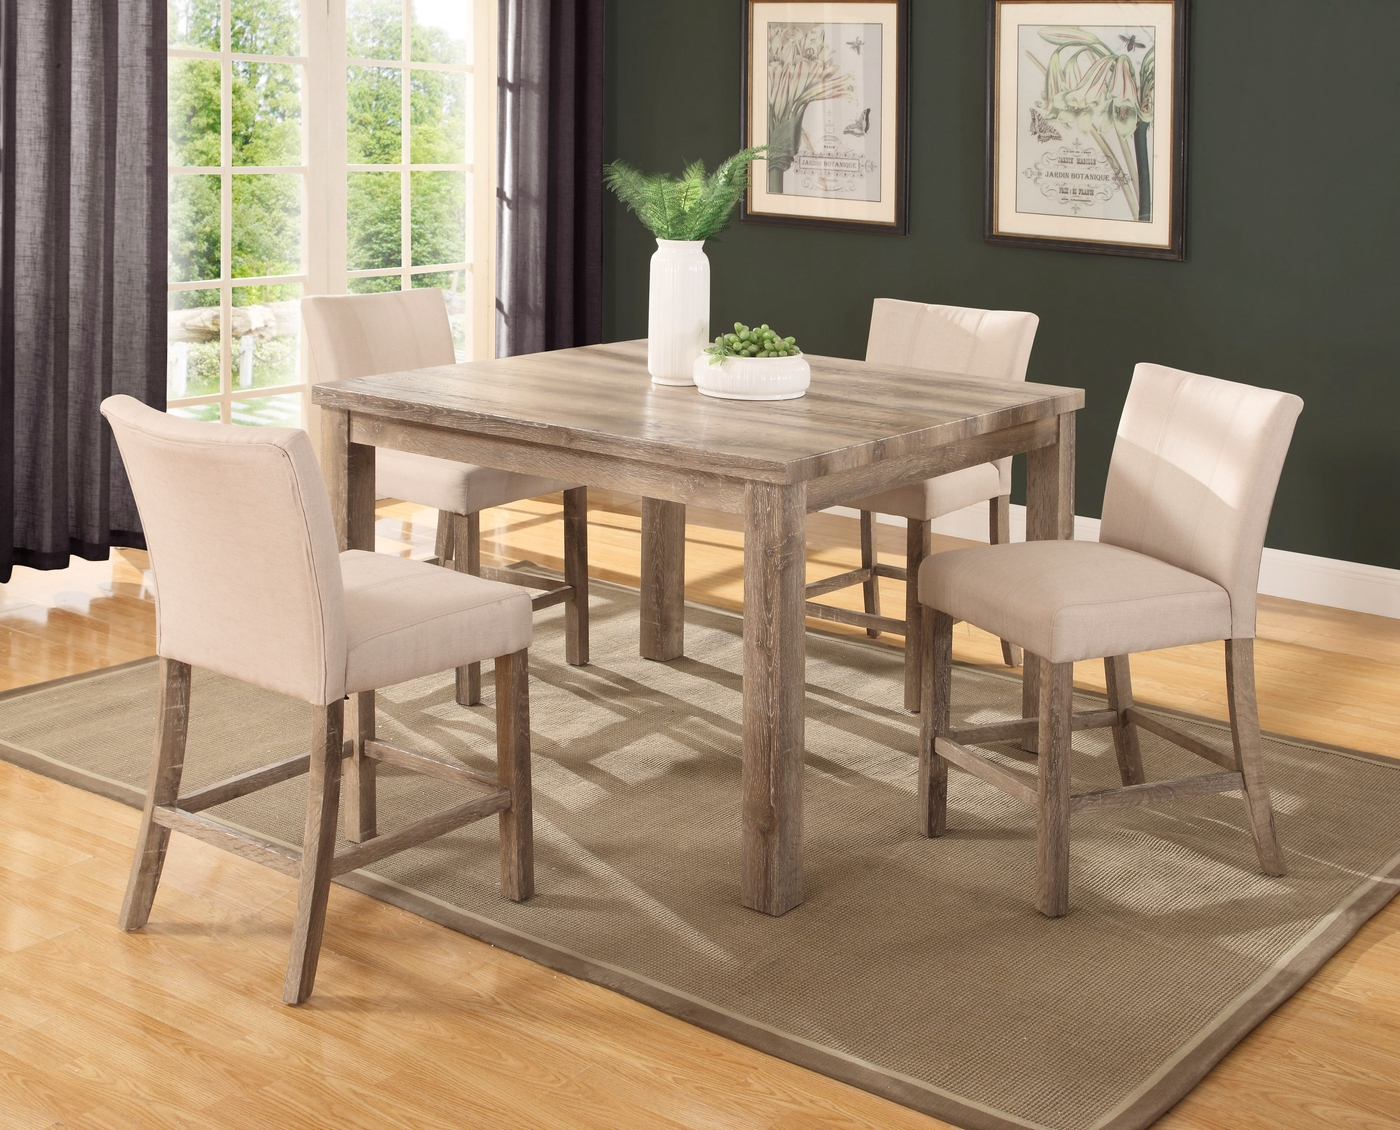 Sanders 5 Pc 48 Quot Counter Height Dining Set In Weathered